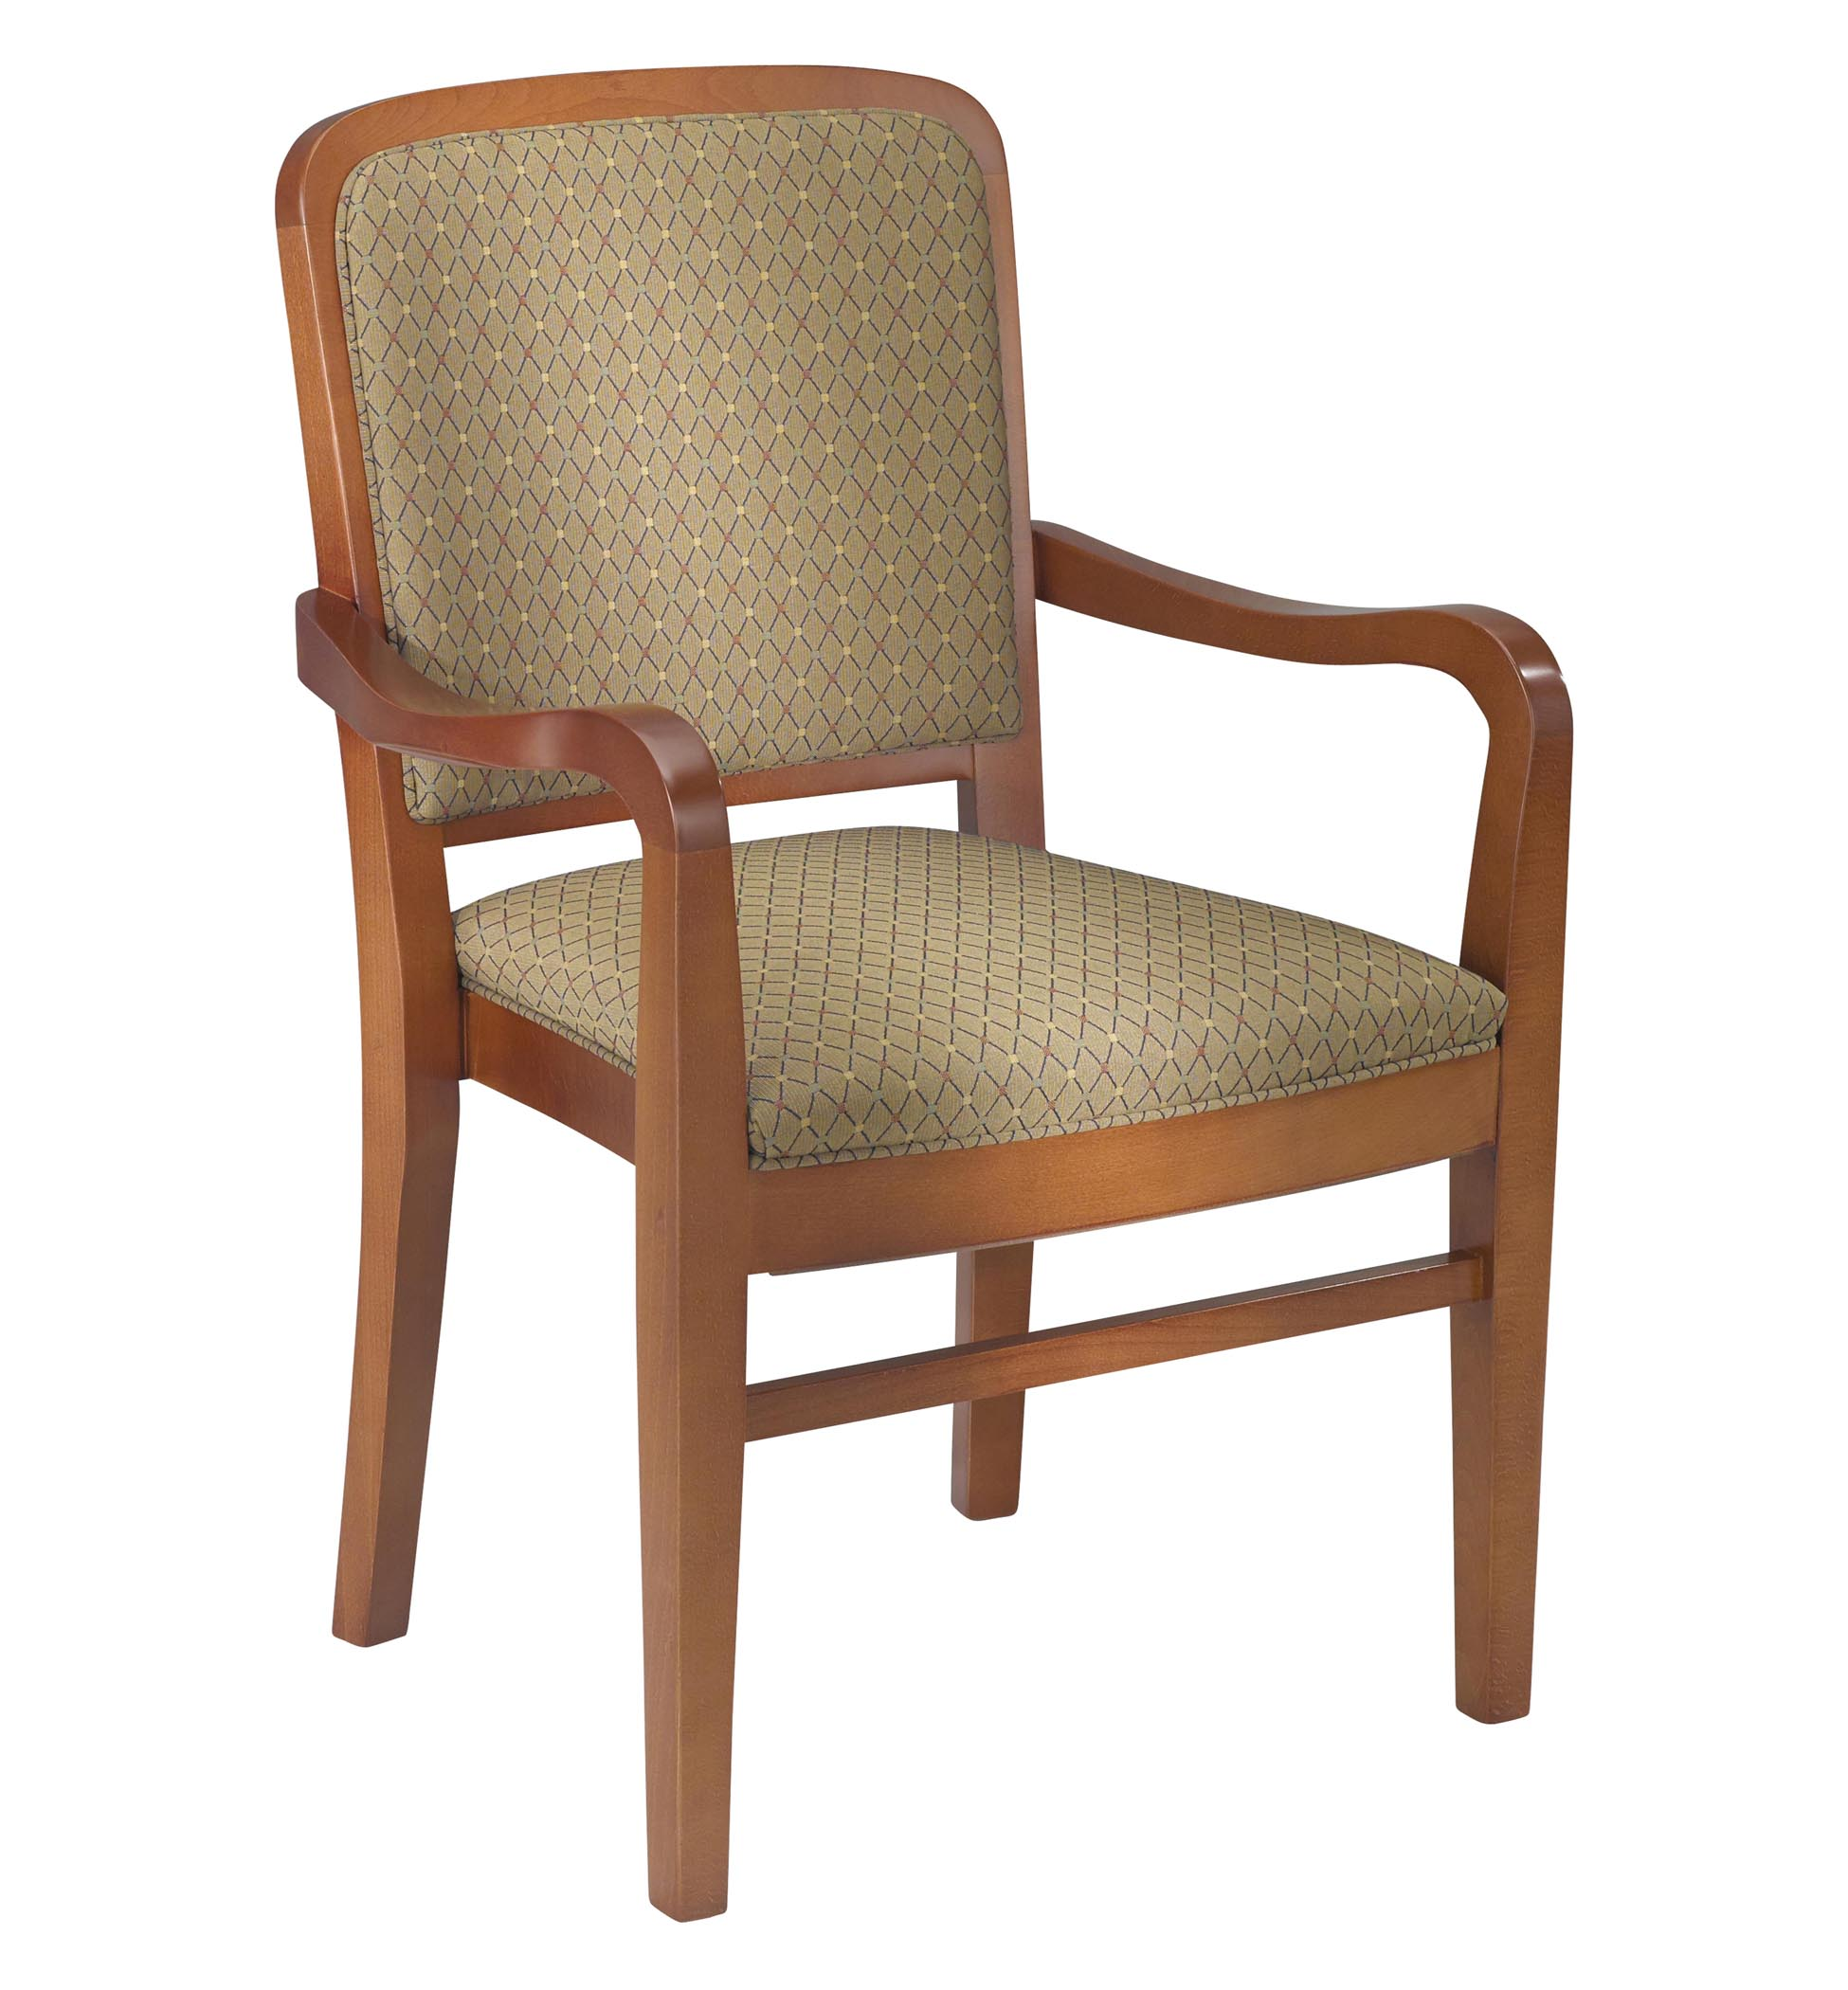 2760 Stacking Wood Arm Chair. SHARE. LOW-RES HI-RES FAVORITES PRINT  sc 1 st  Shelby Williams & 2760 Stacking Wood Arm Chair